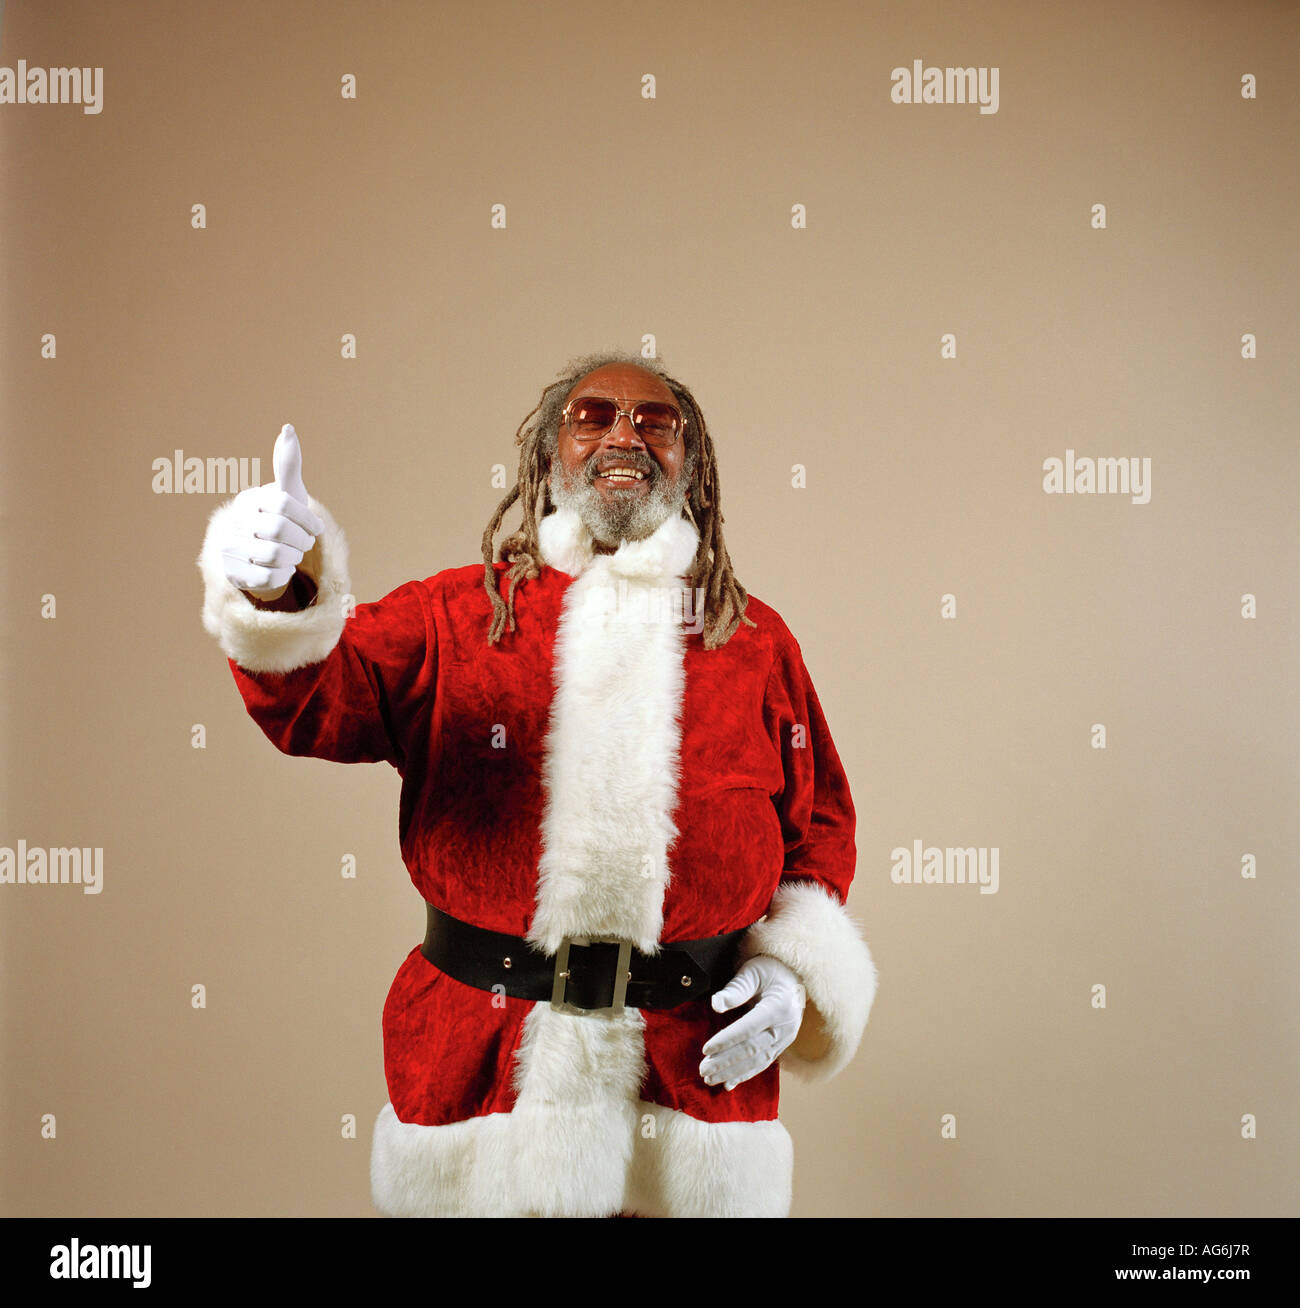 African American Santa Claus Giving A Thumbs Up - Stock Image